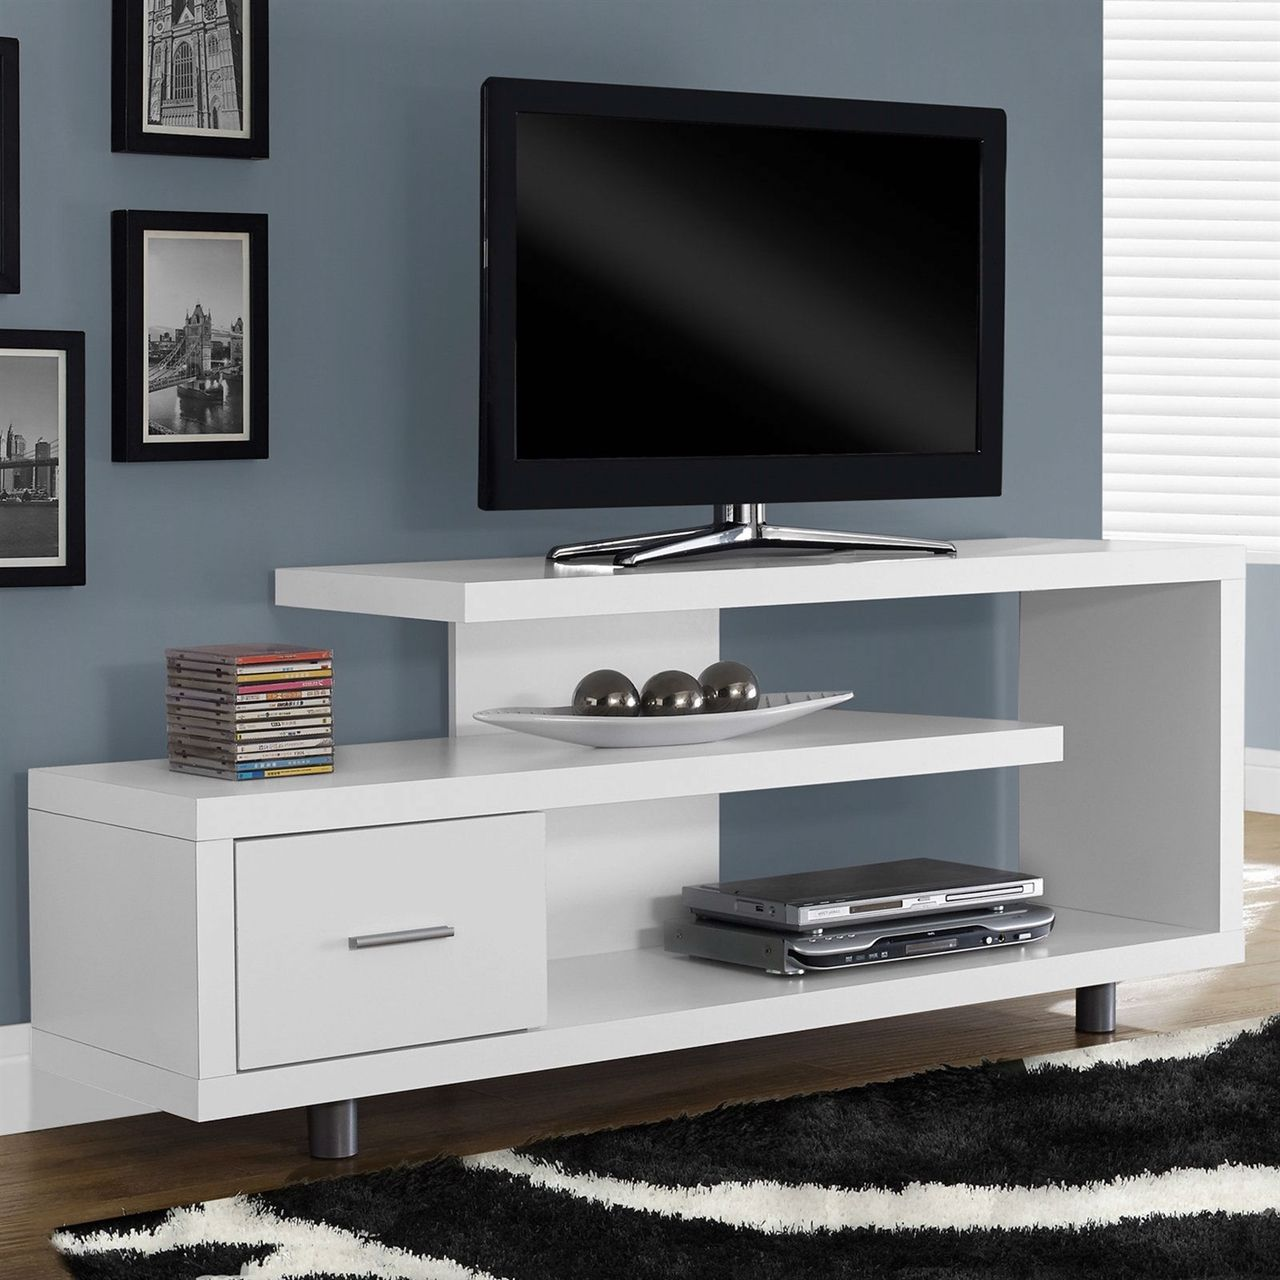 Bedroom Tv Stands: Fits Up To 60-inch Flat Screen TV